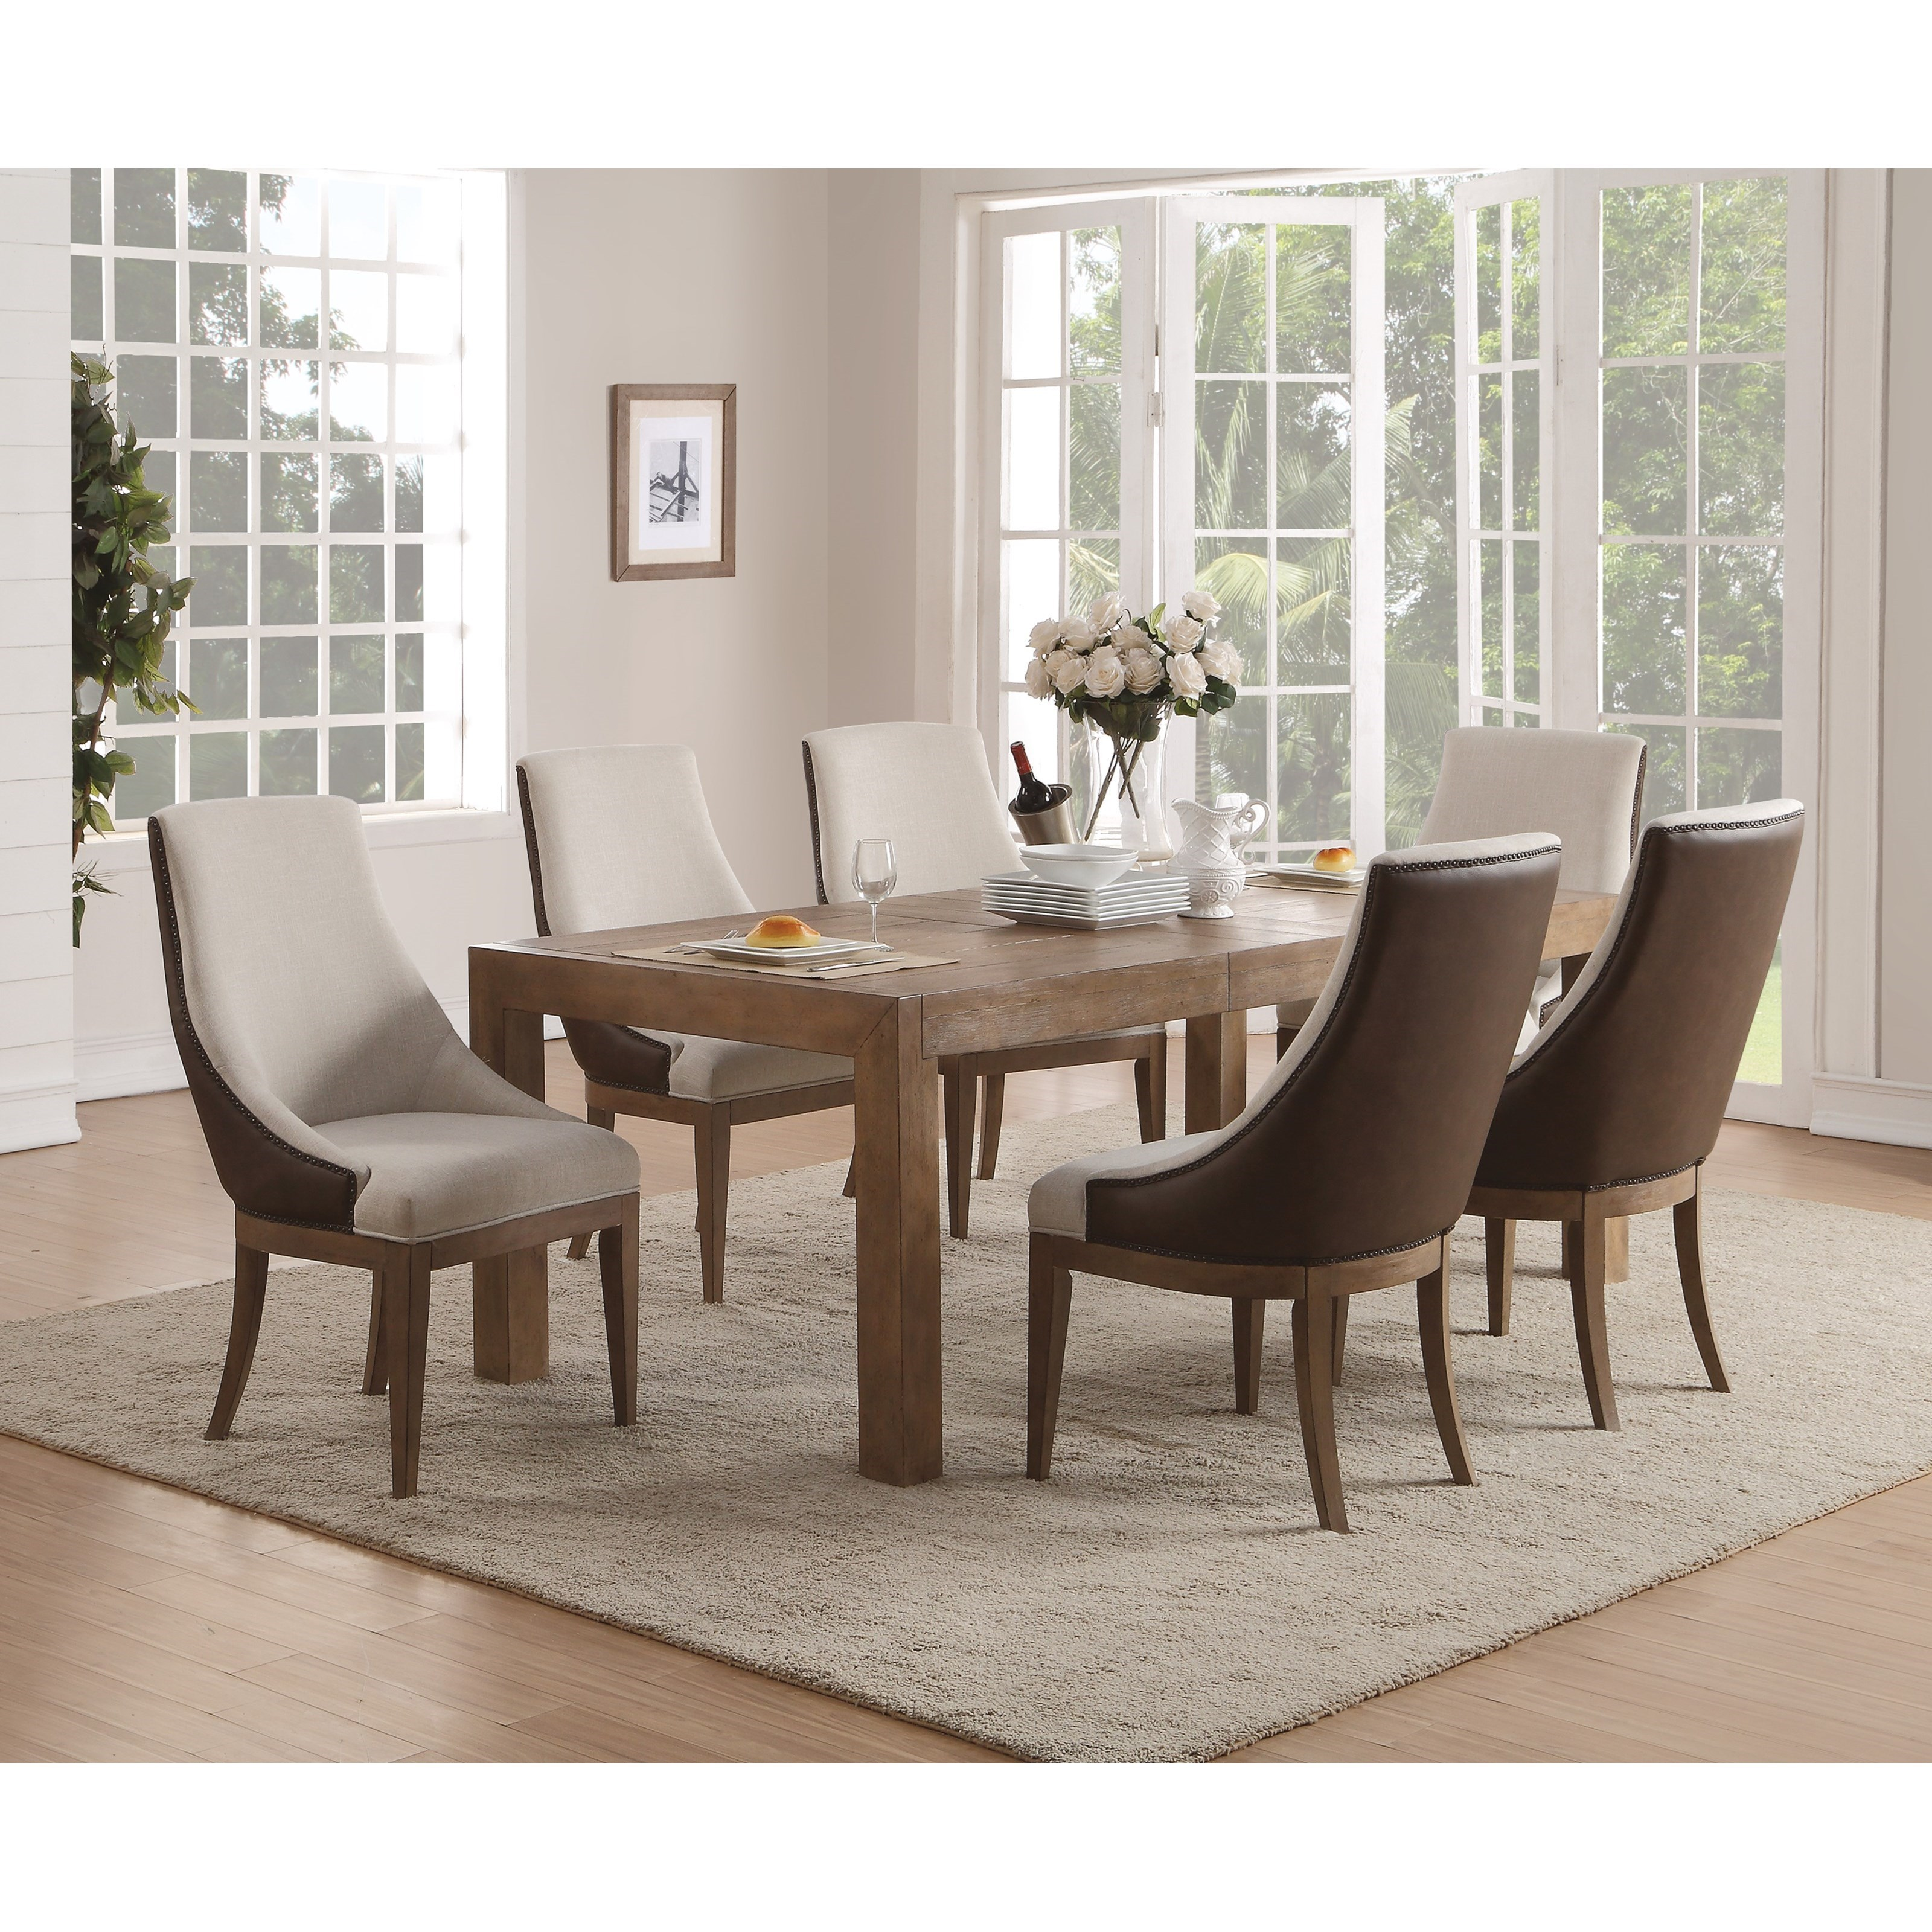 Flexsteel Wynwood Collection Carmen Table and Chair Set - Item Number: W1146-831+6x840